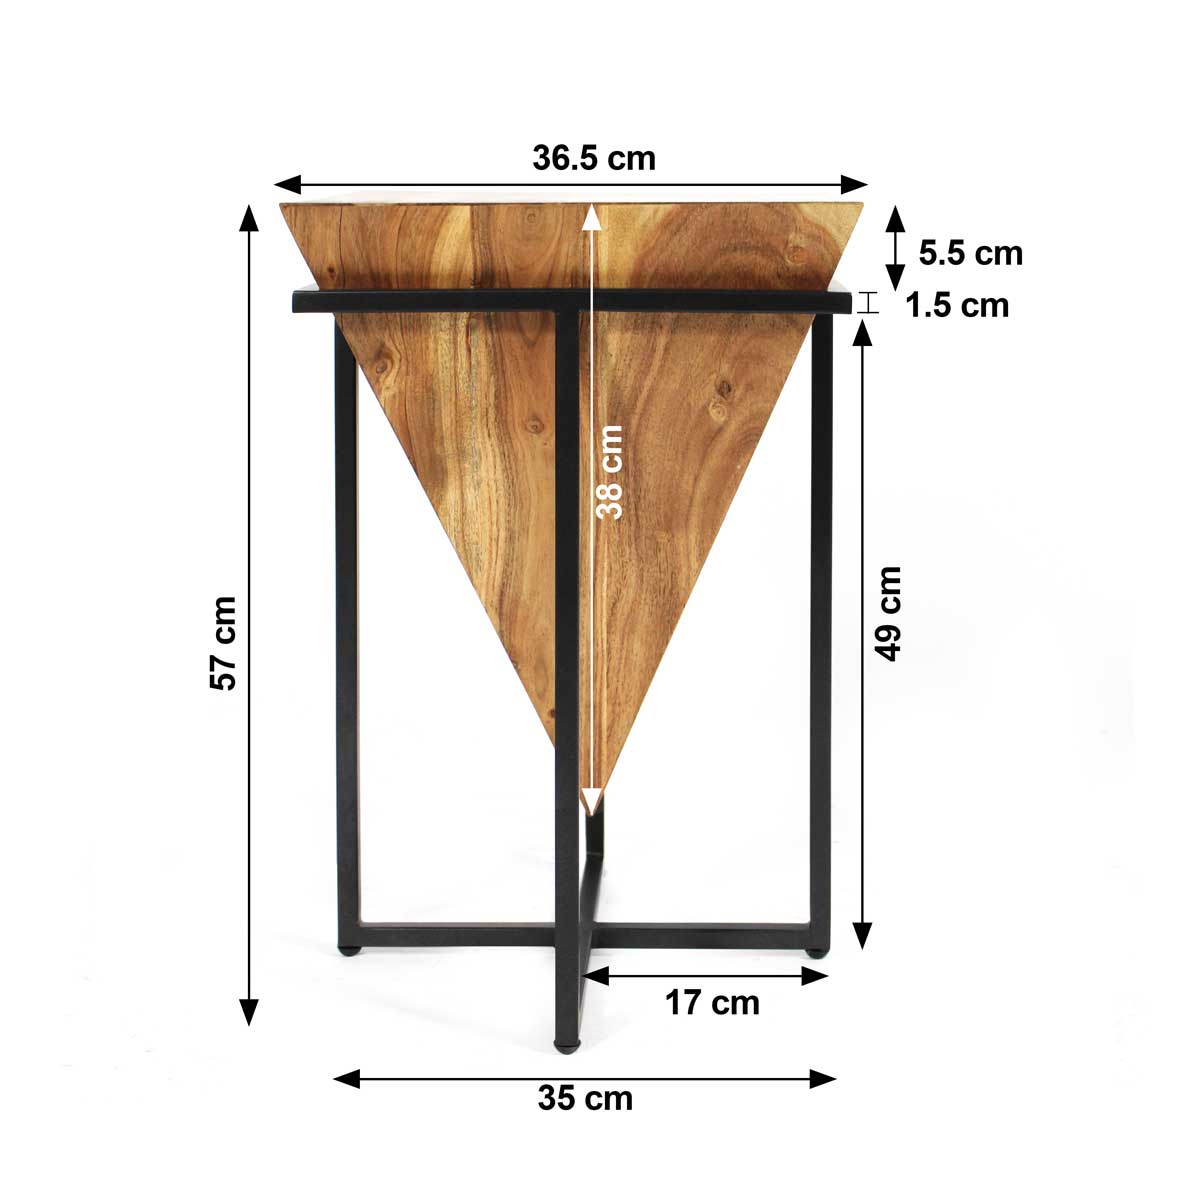 Table basse d'appoint design  dimensions